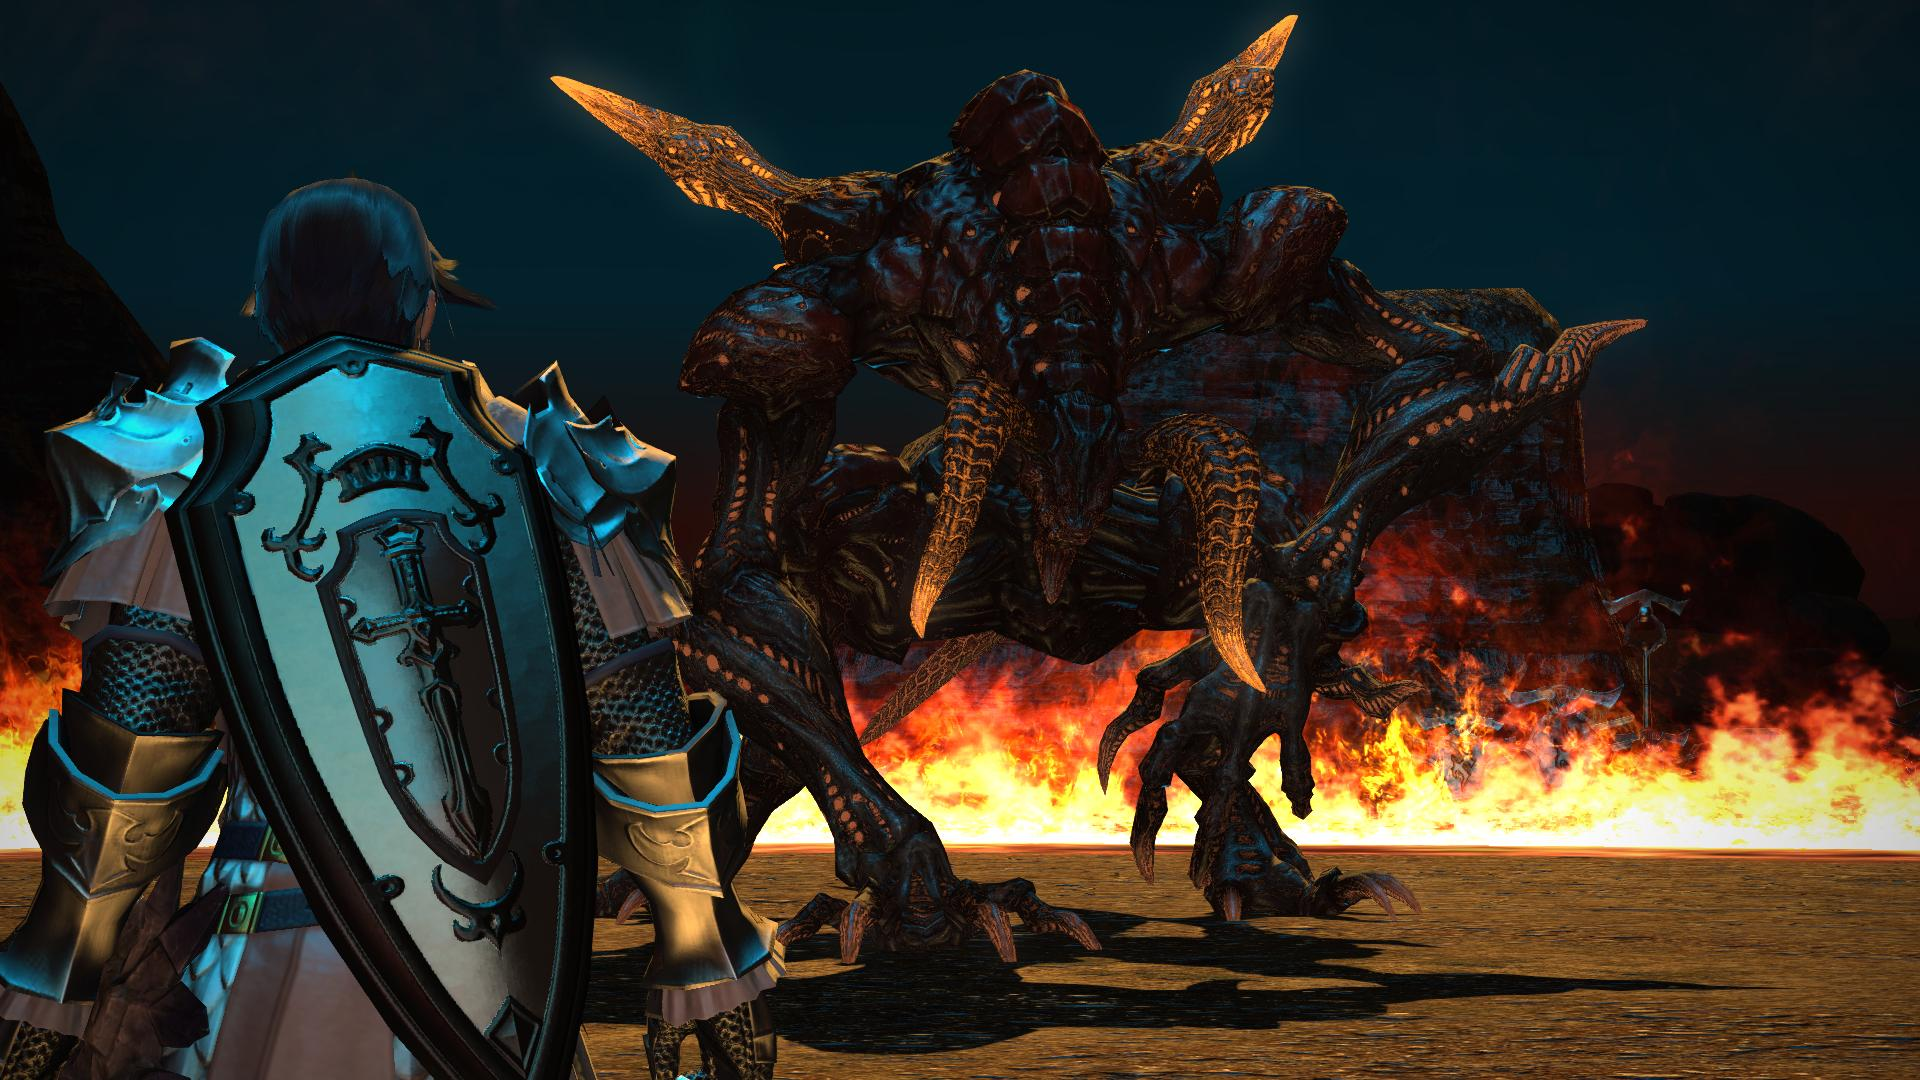 Final Fantasy XIV Producer Responds to Criticism on Lag and Area